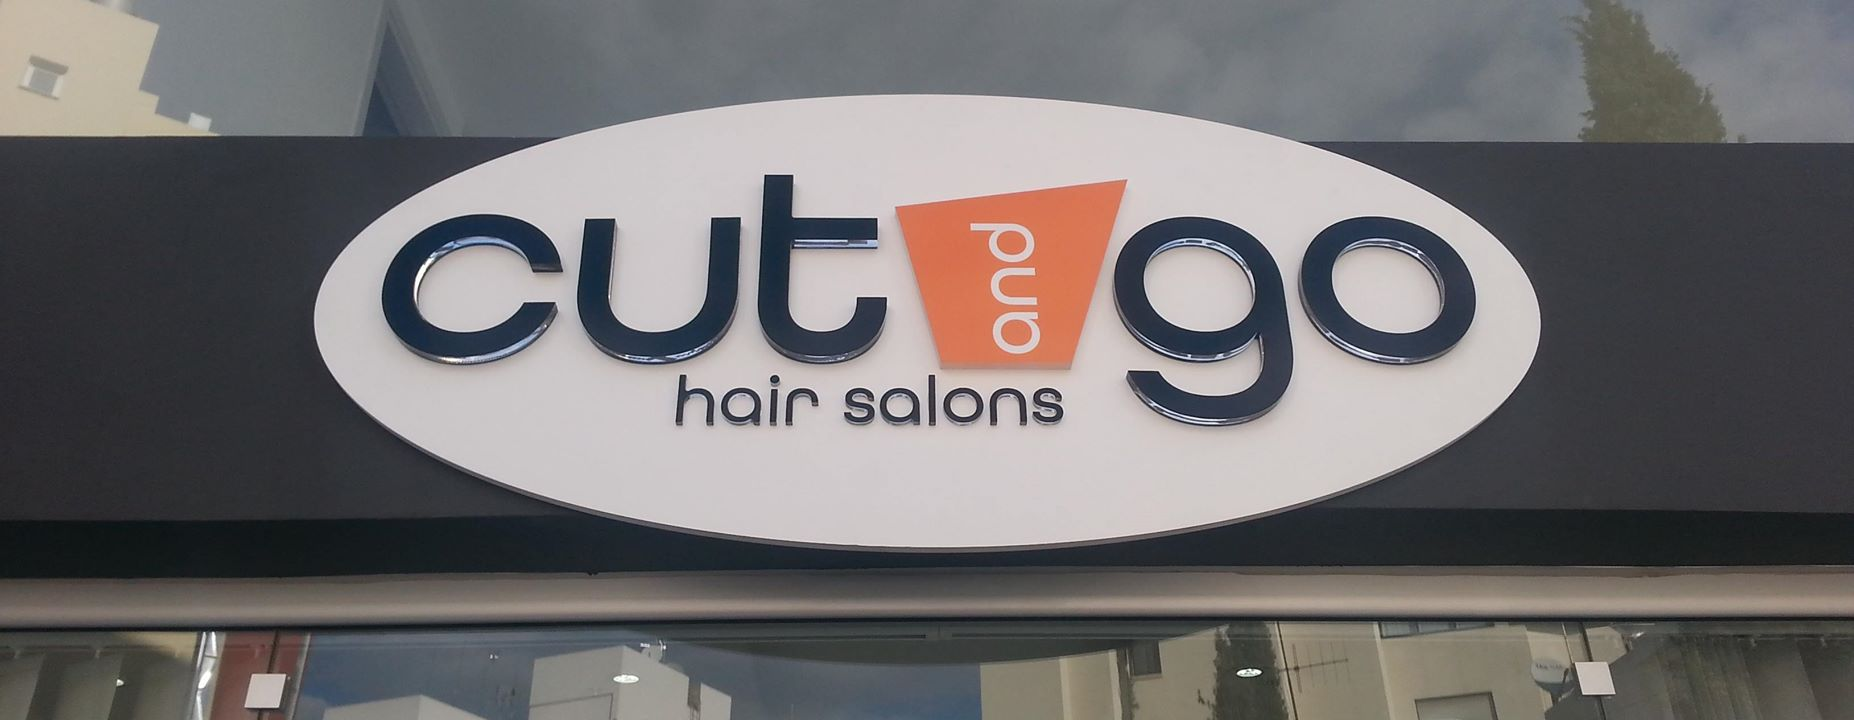 Cut and Go Hair Salons Profile Image  - Hairdressers - On XploreCyprus